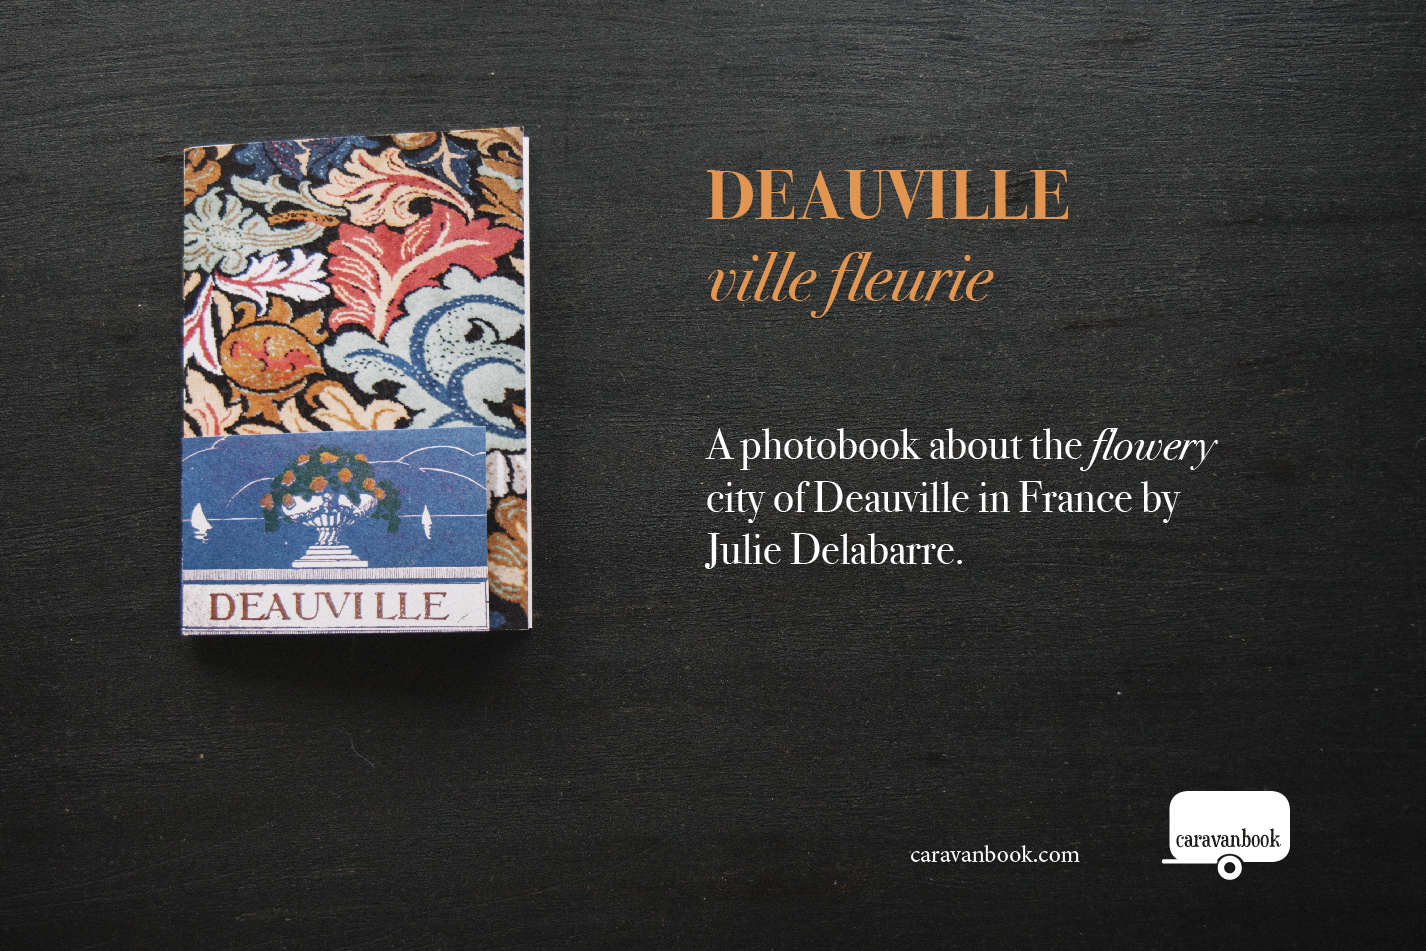 caravanbook_Deauville_photobook_english.jpg